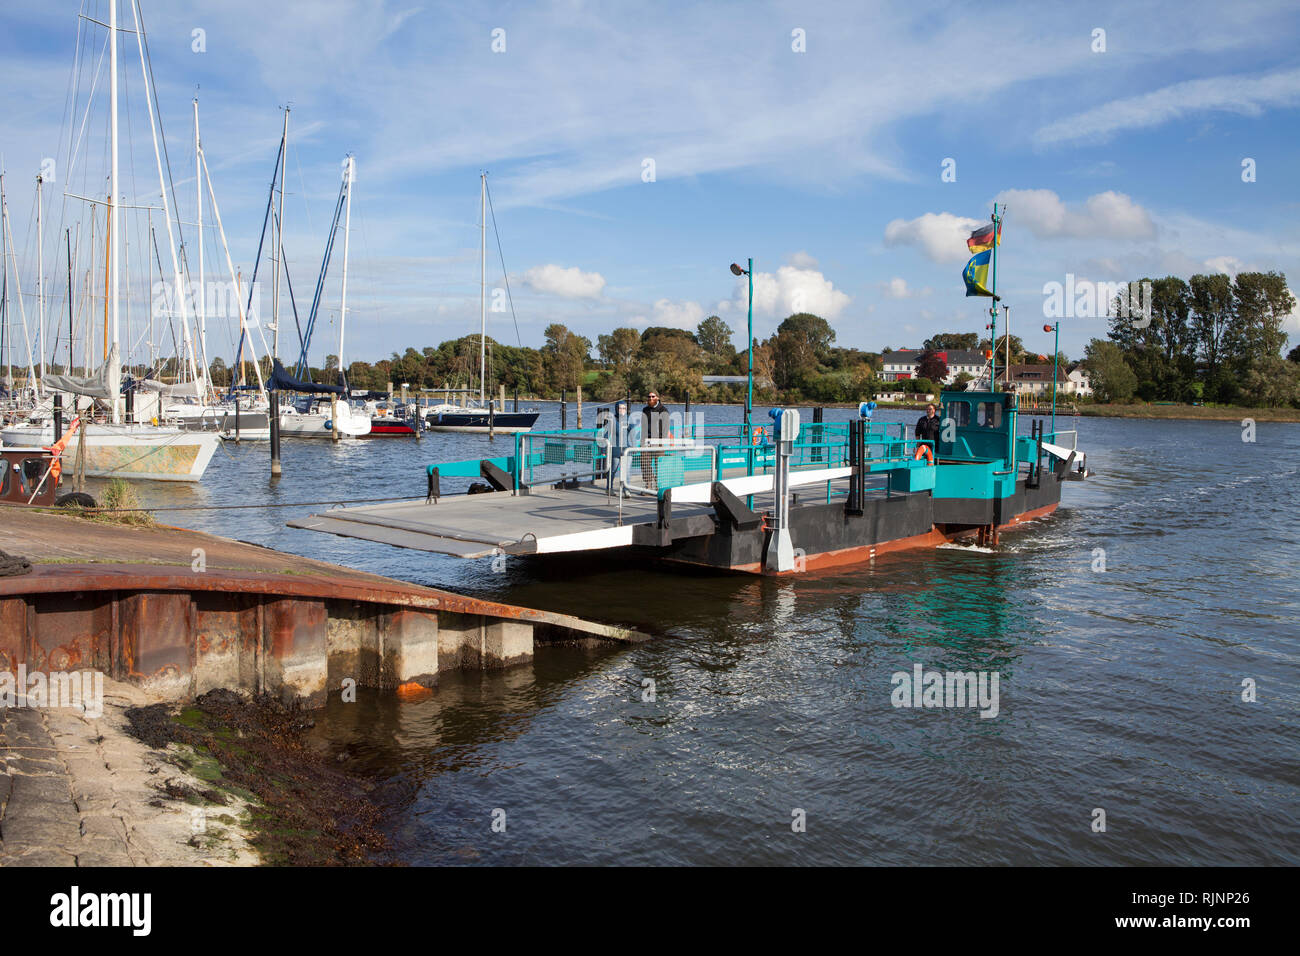 Ferry over the Schlei, Arnis, Schleswig-Holstein, Germany, Europe - Stock Image